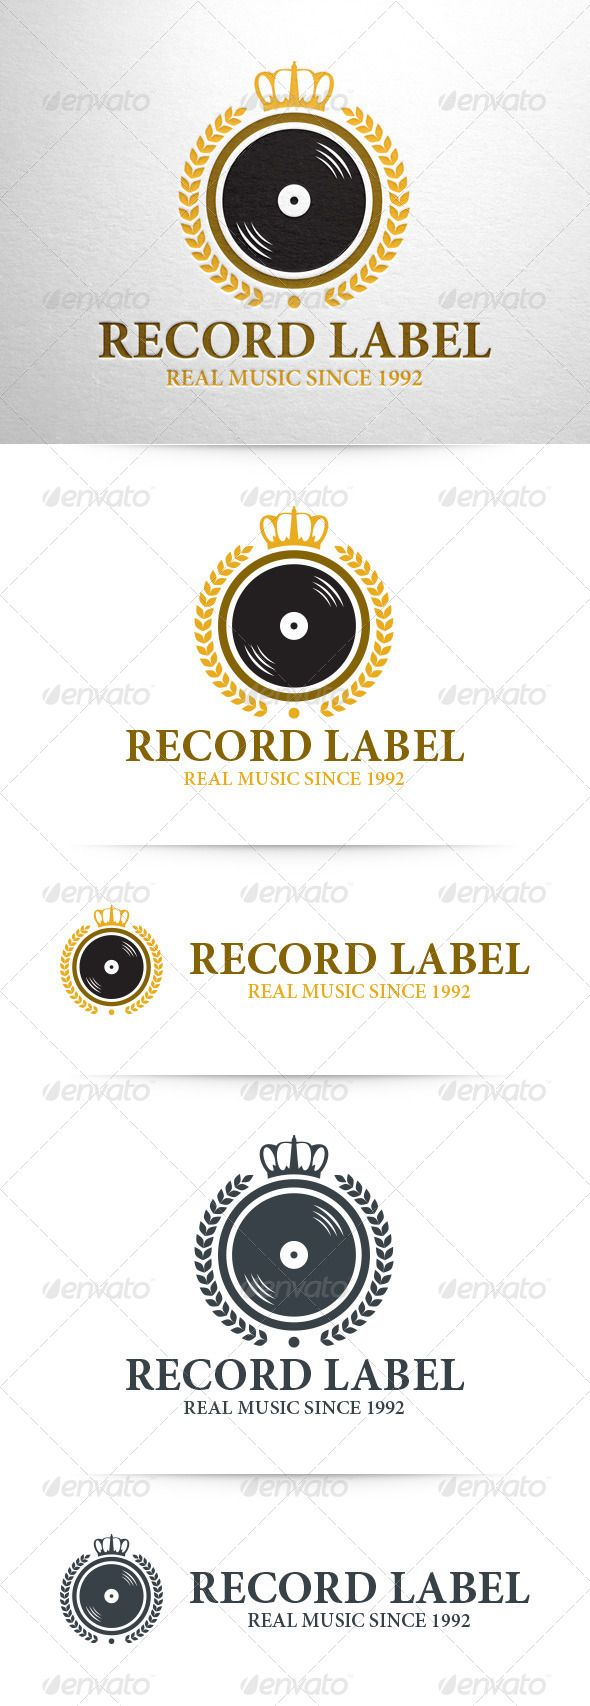 Record Label Logo Template   Logo templates, Template and Logos